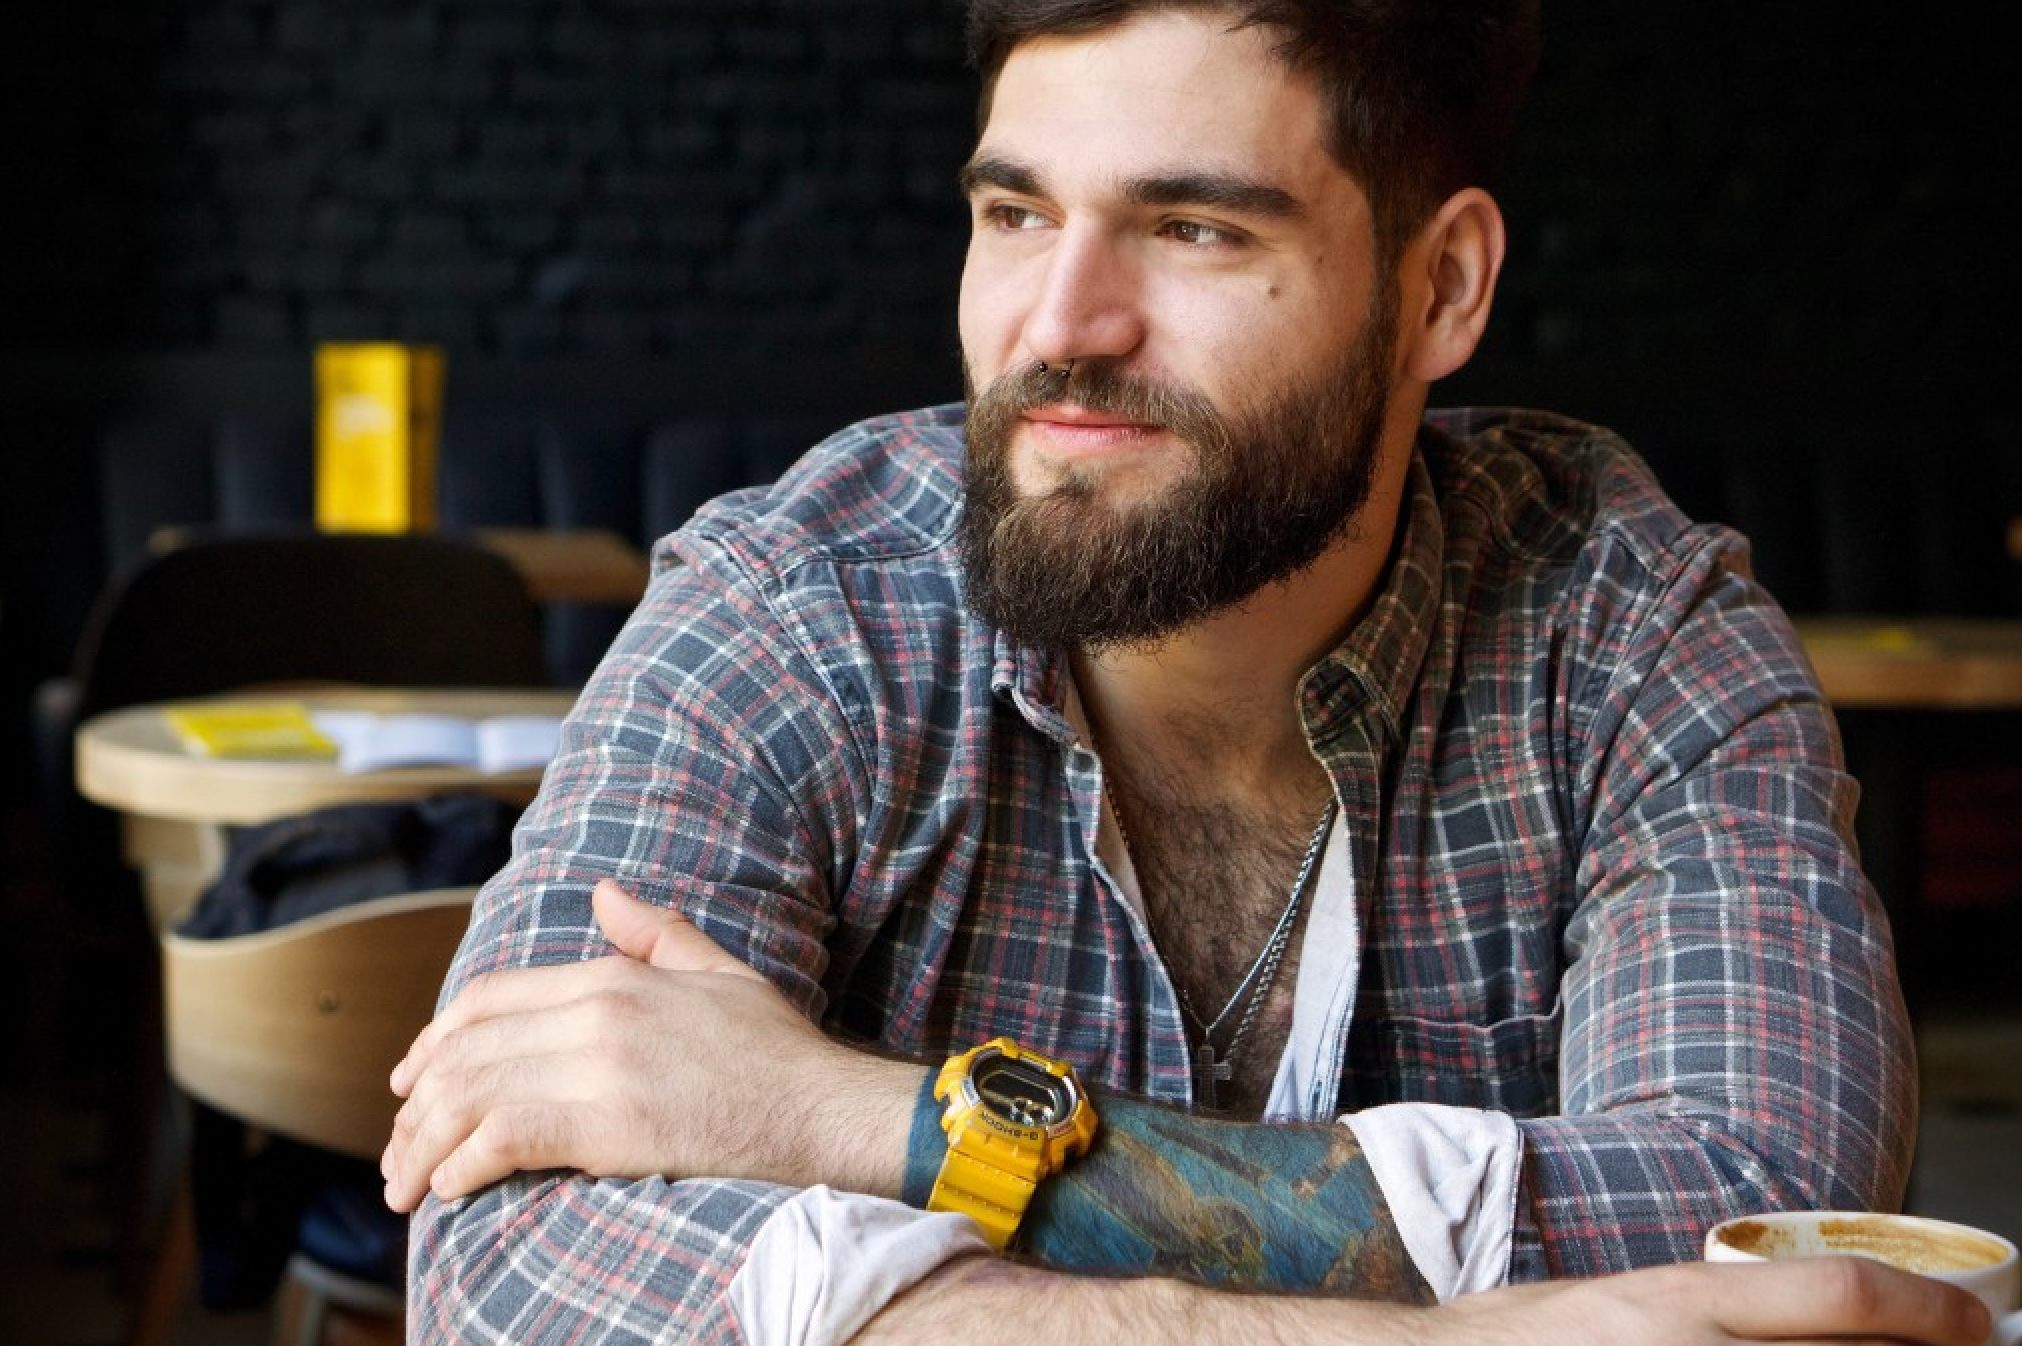 A tattooed man sits in a cafe drinking coffee